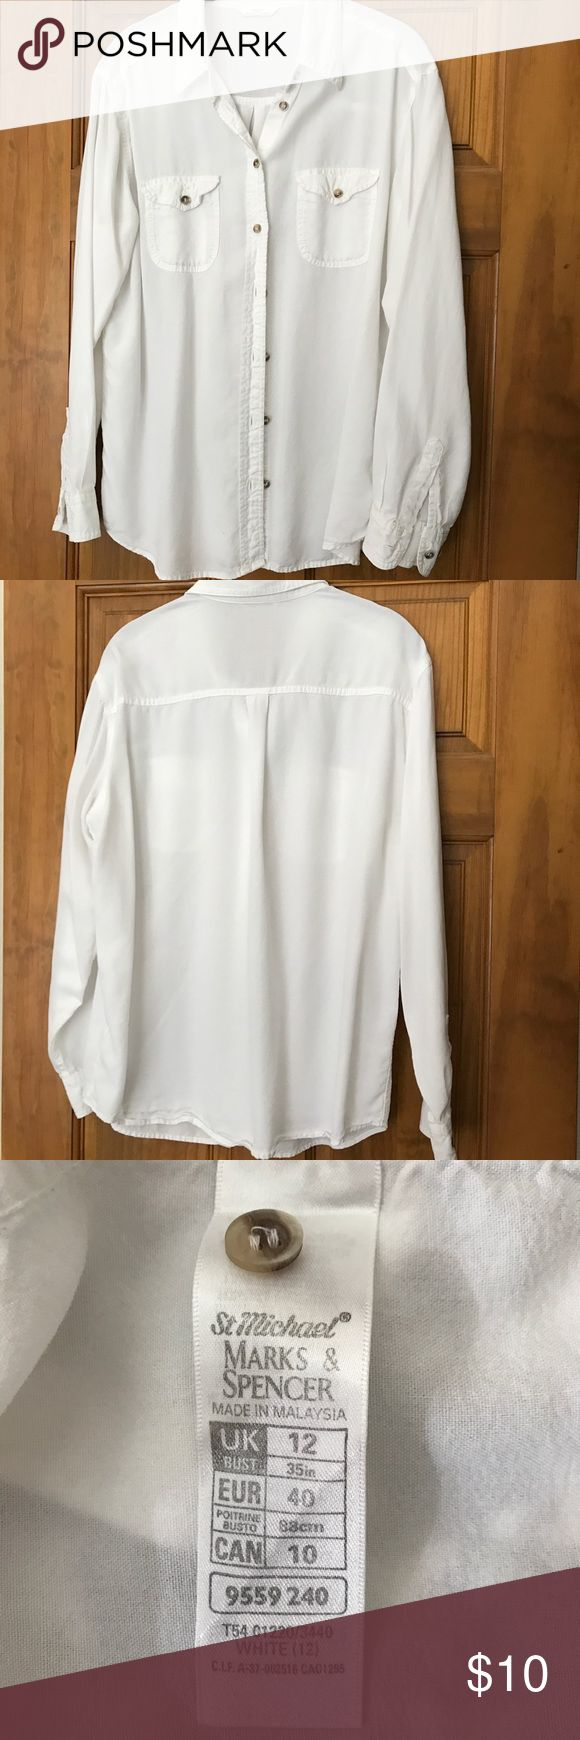 Crisp white, long sleeve, button down blouse. Divine button down for jeans with a blazer or on it's own. Size UK 12. Marks & Spencer Tops Button Down Shirts